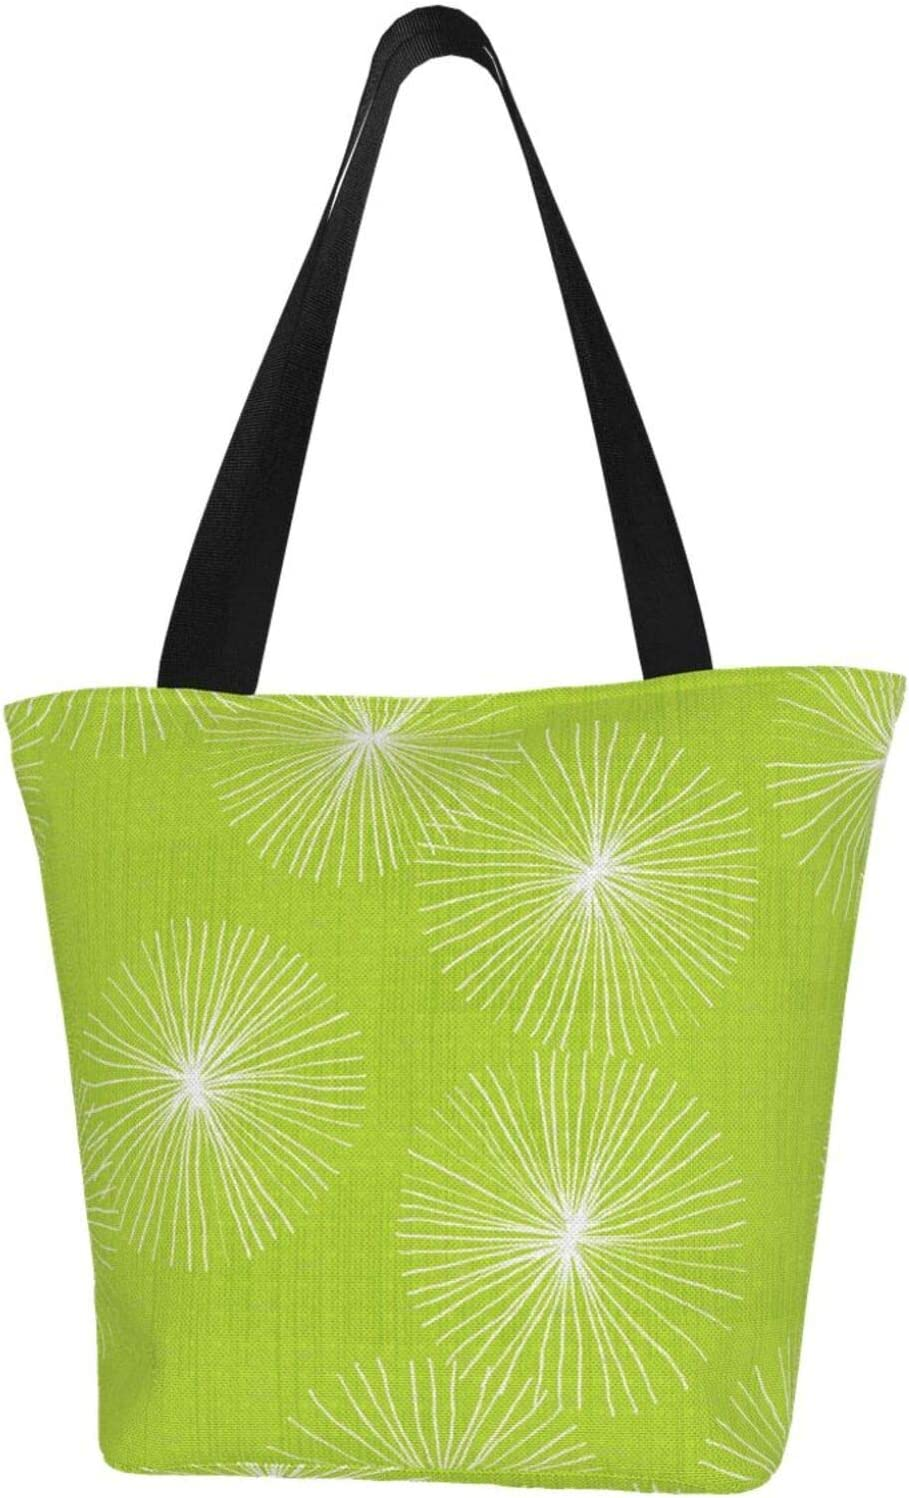 AKLID Green Dandelion Extra Large Ba Resistant Tote Water Canvas Bombing free shipping shopping